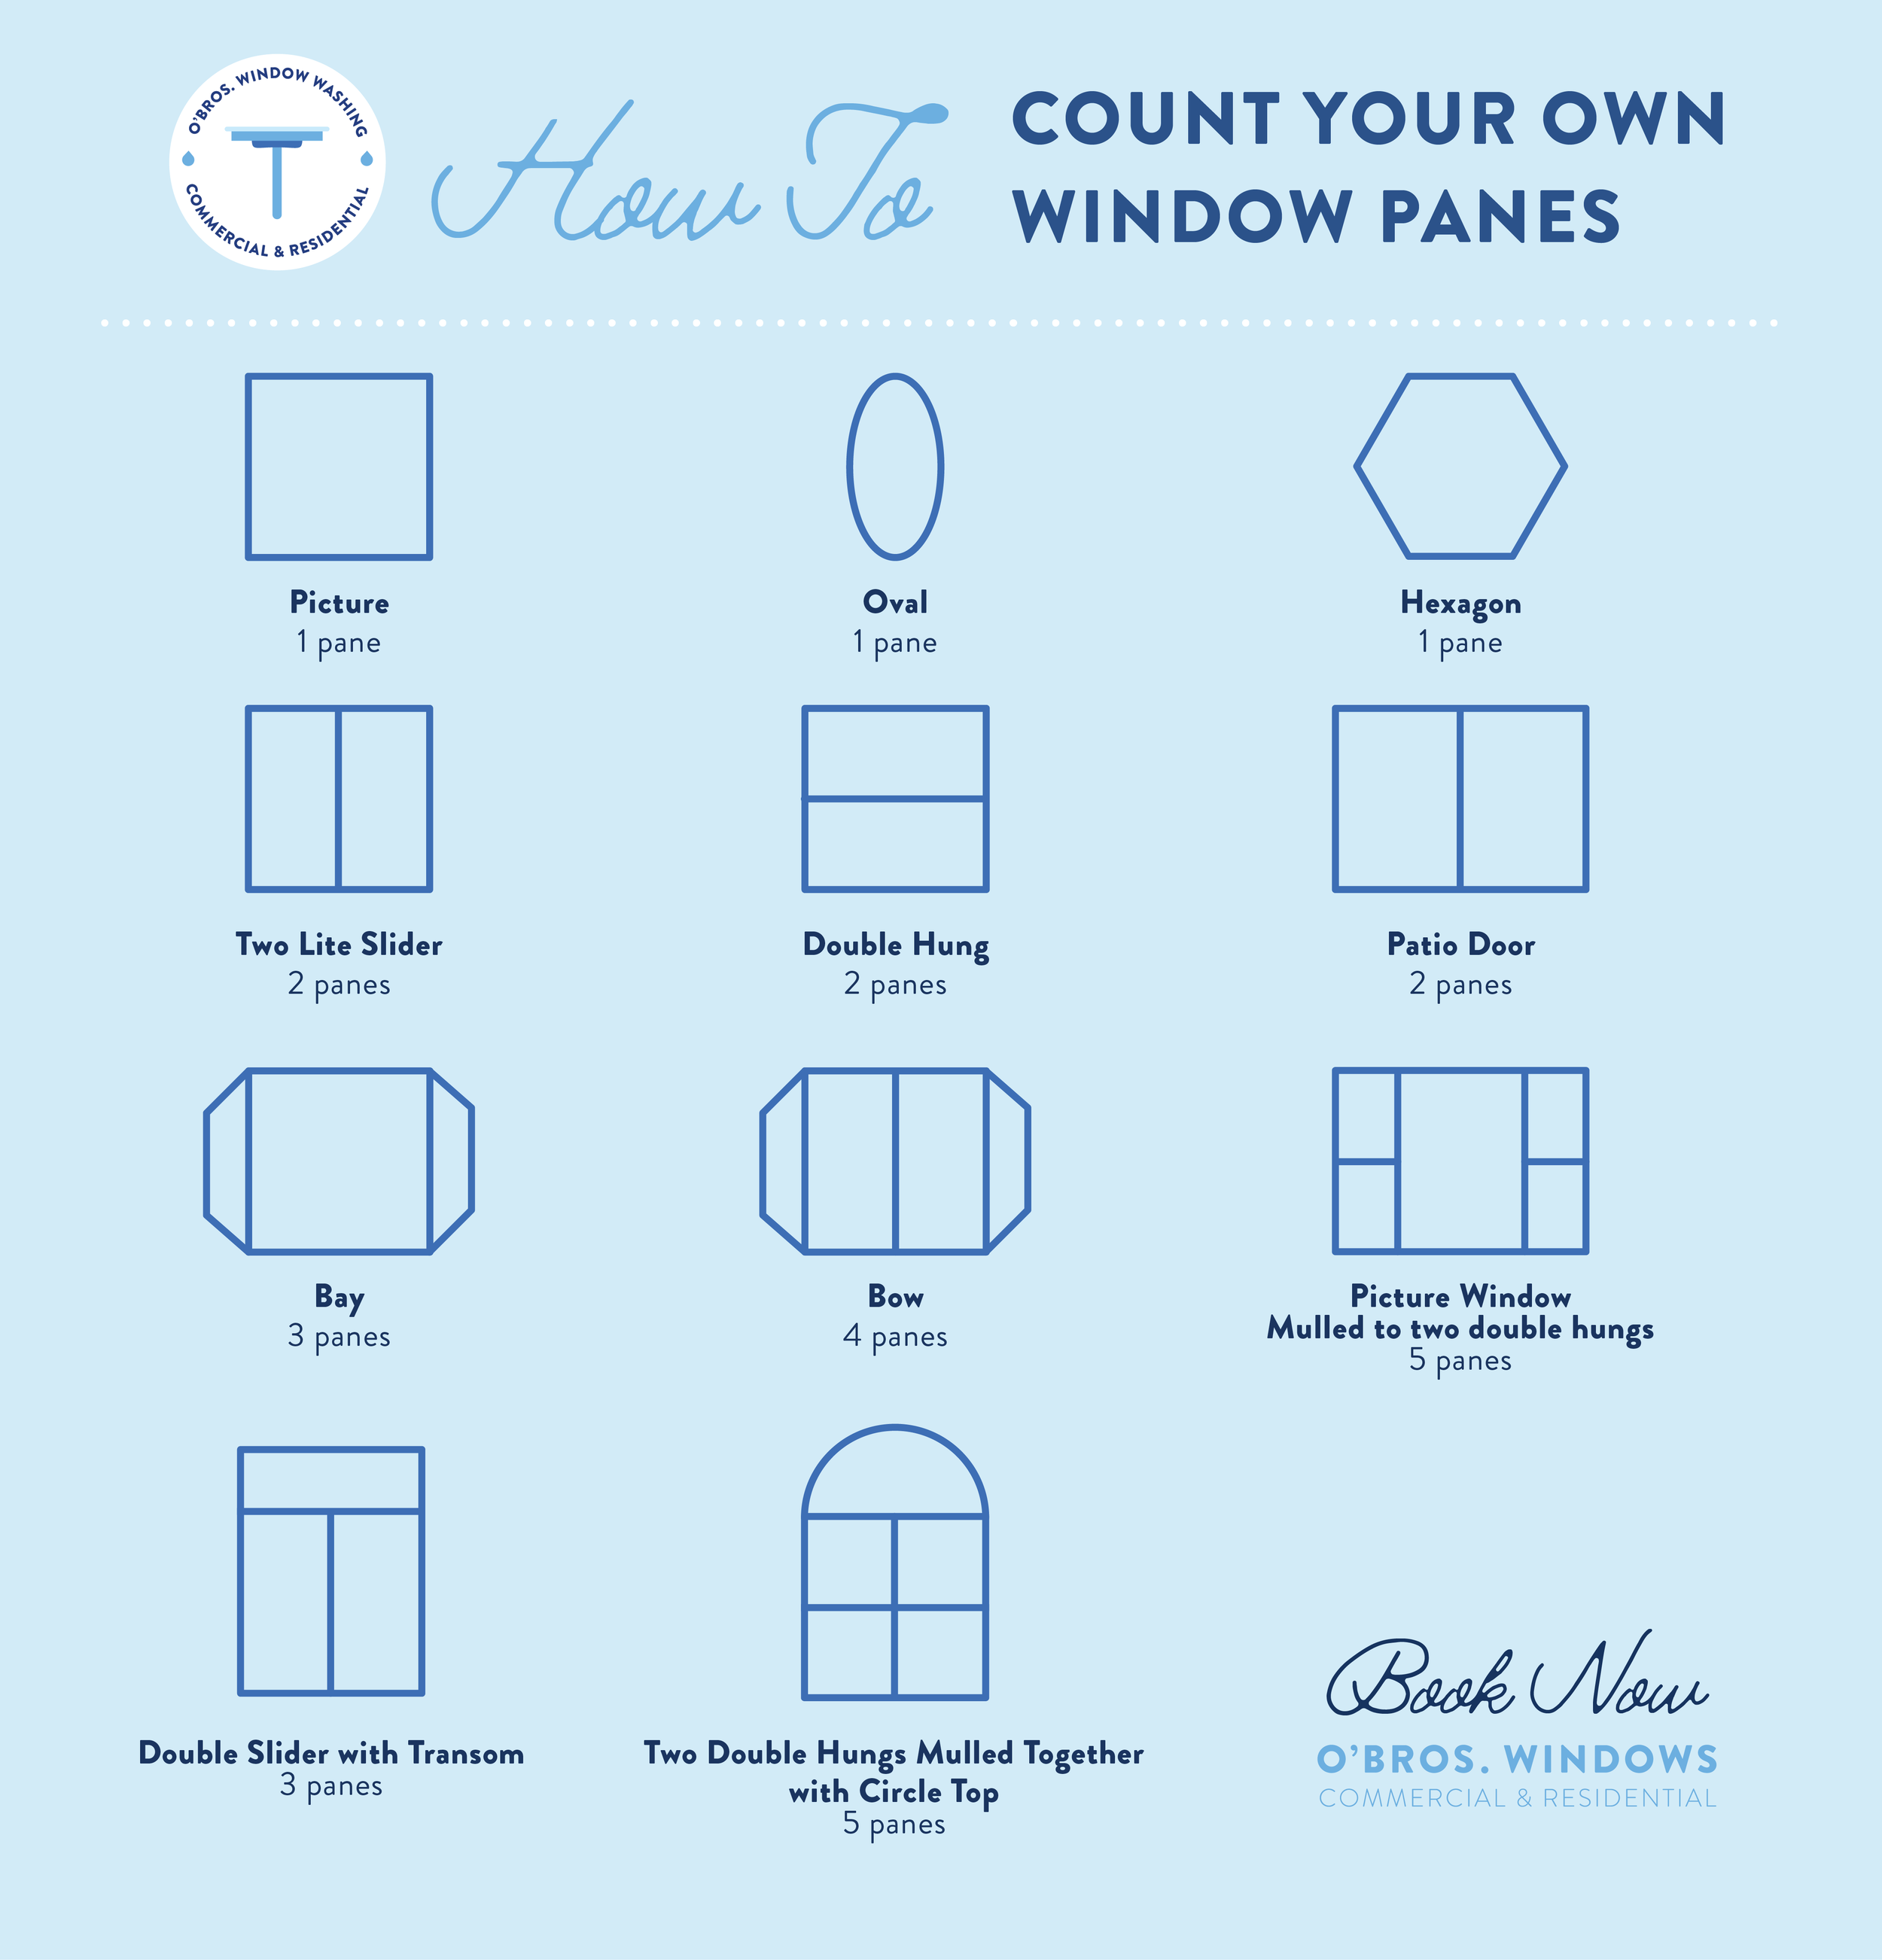 Window Counting Document-01.png